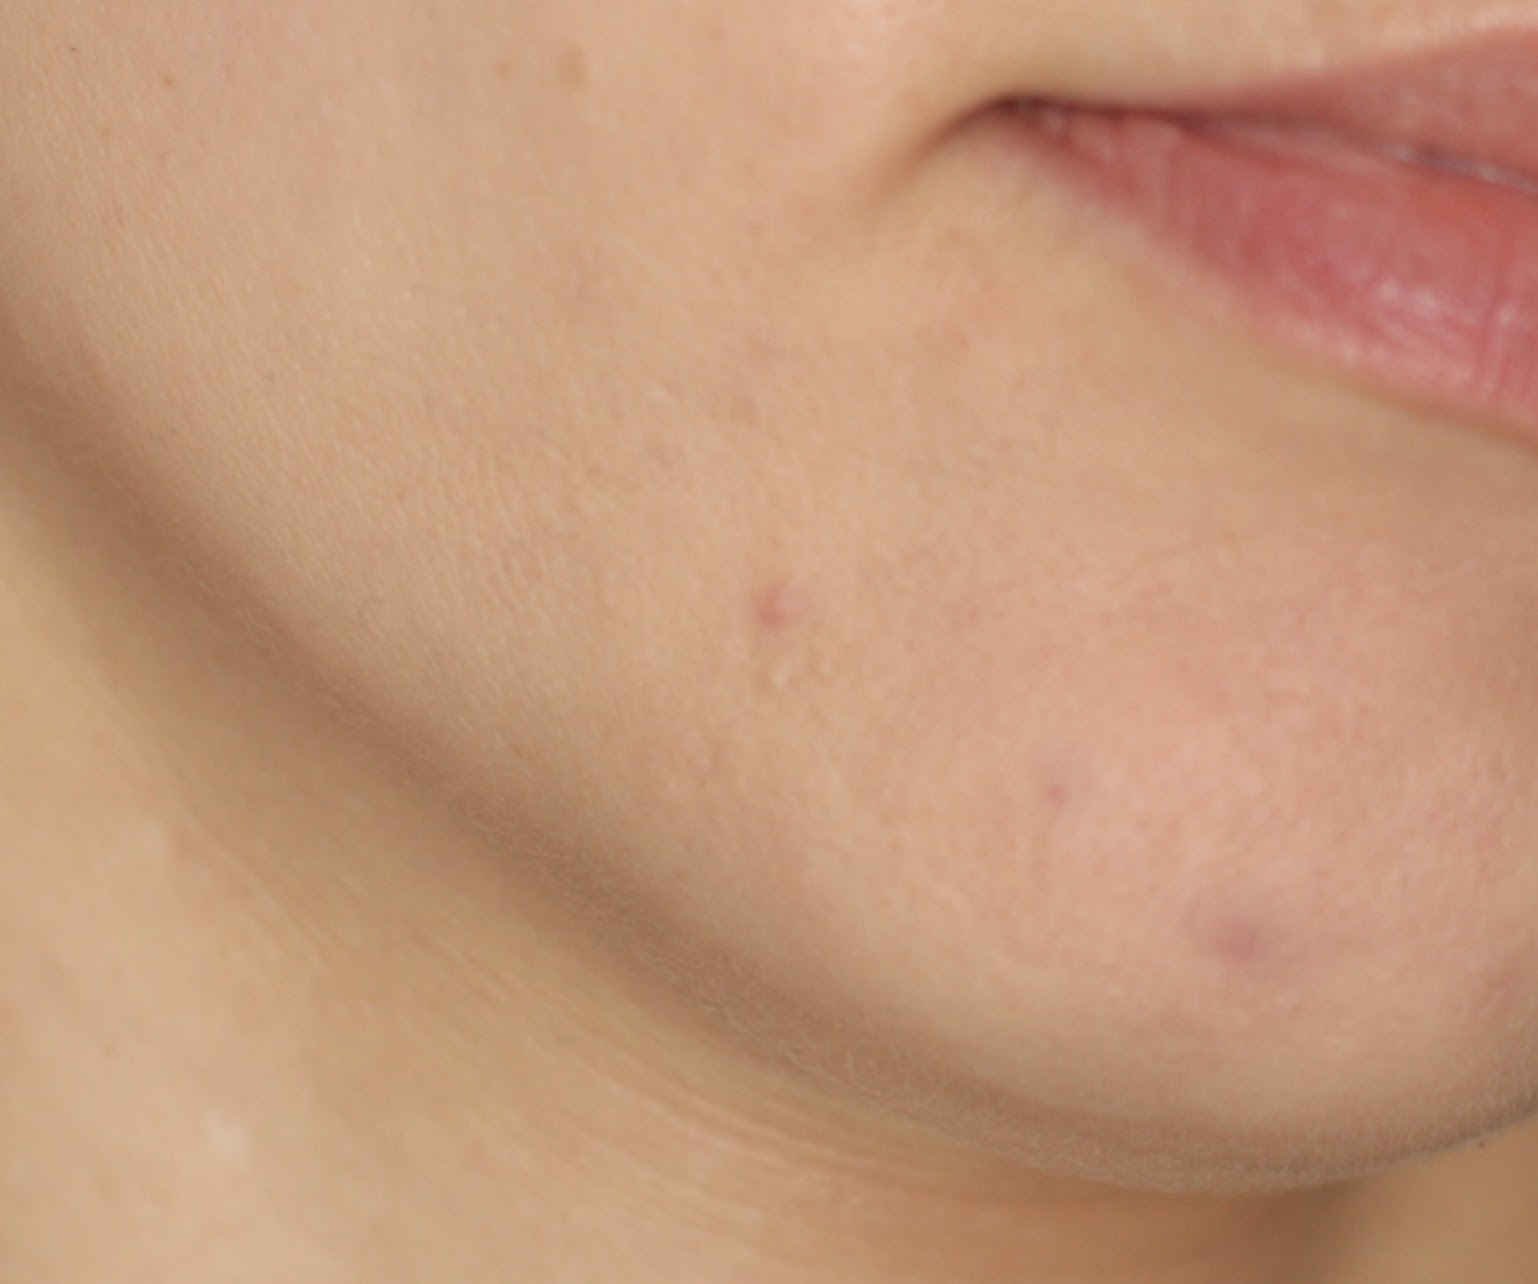 Hormonal acne spots are often located on your chin